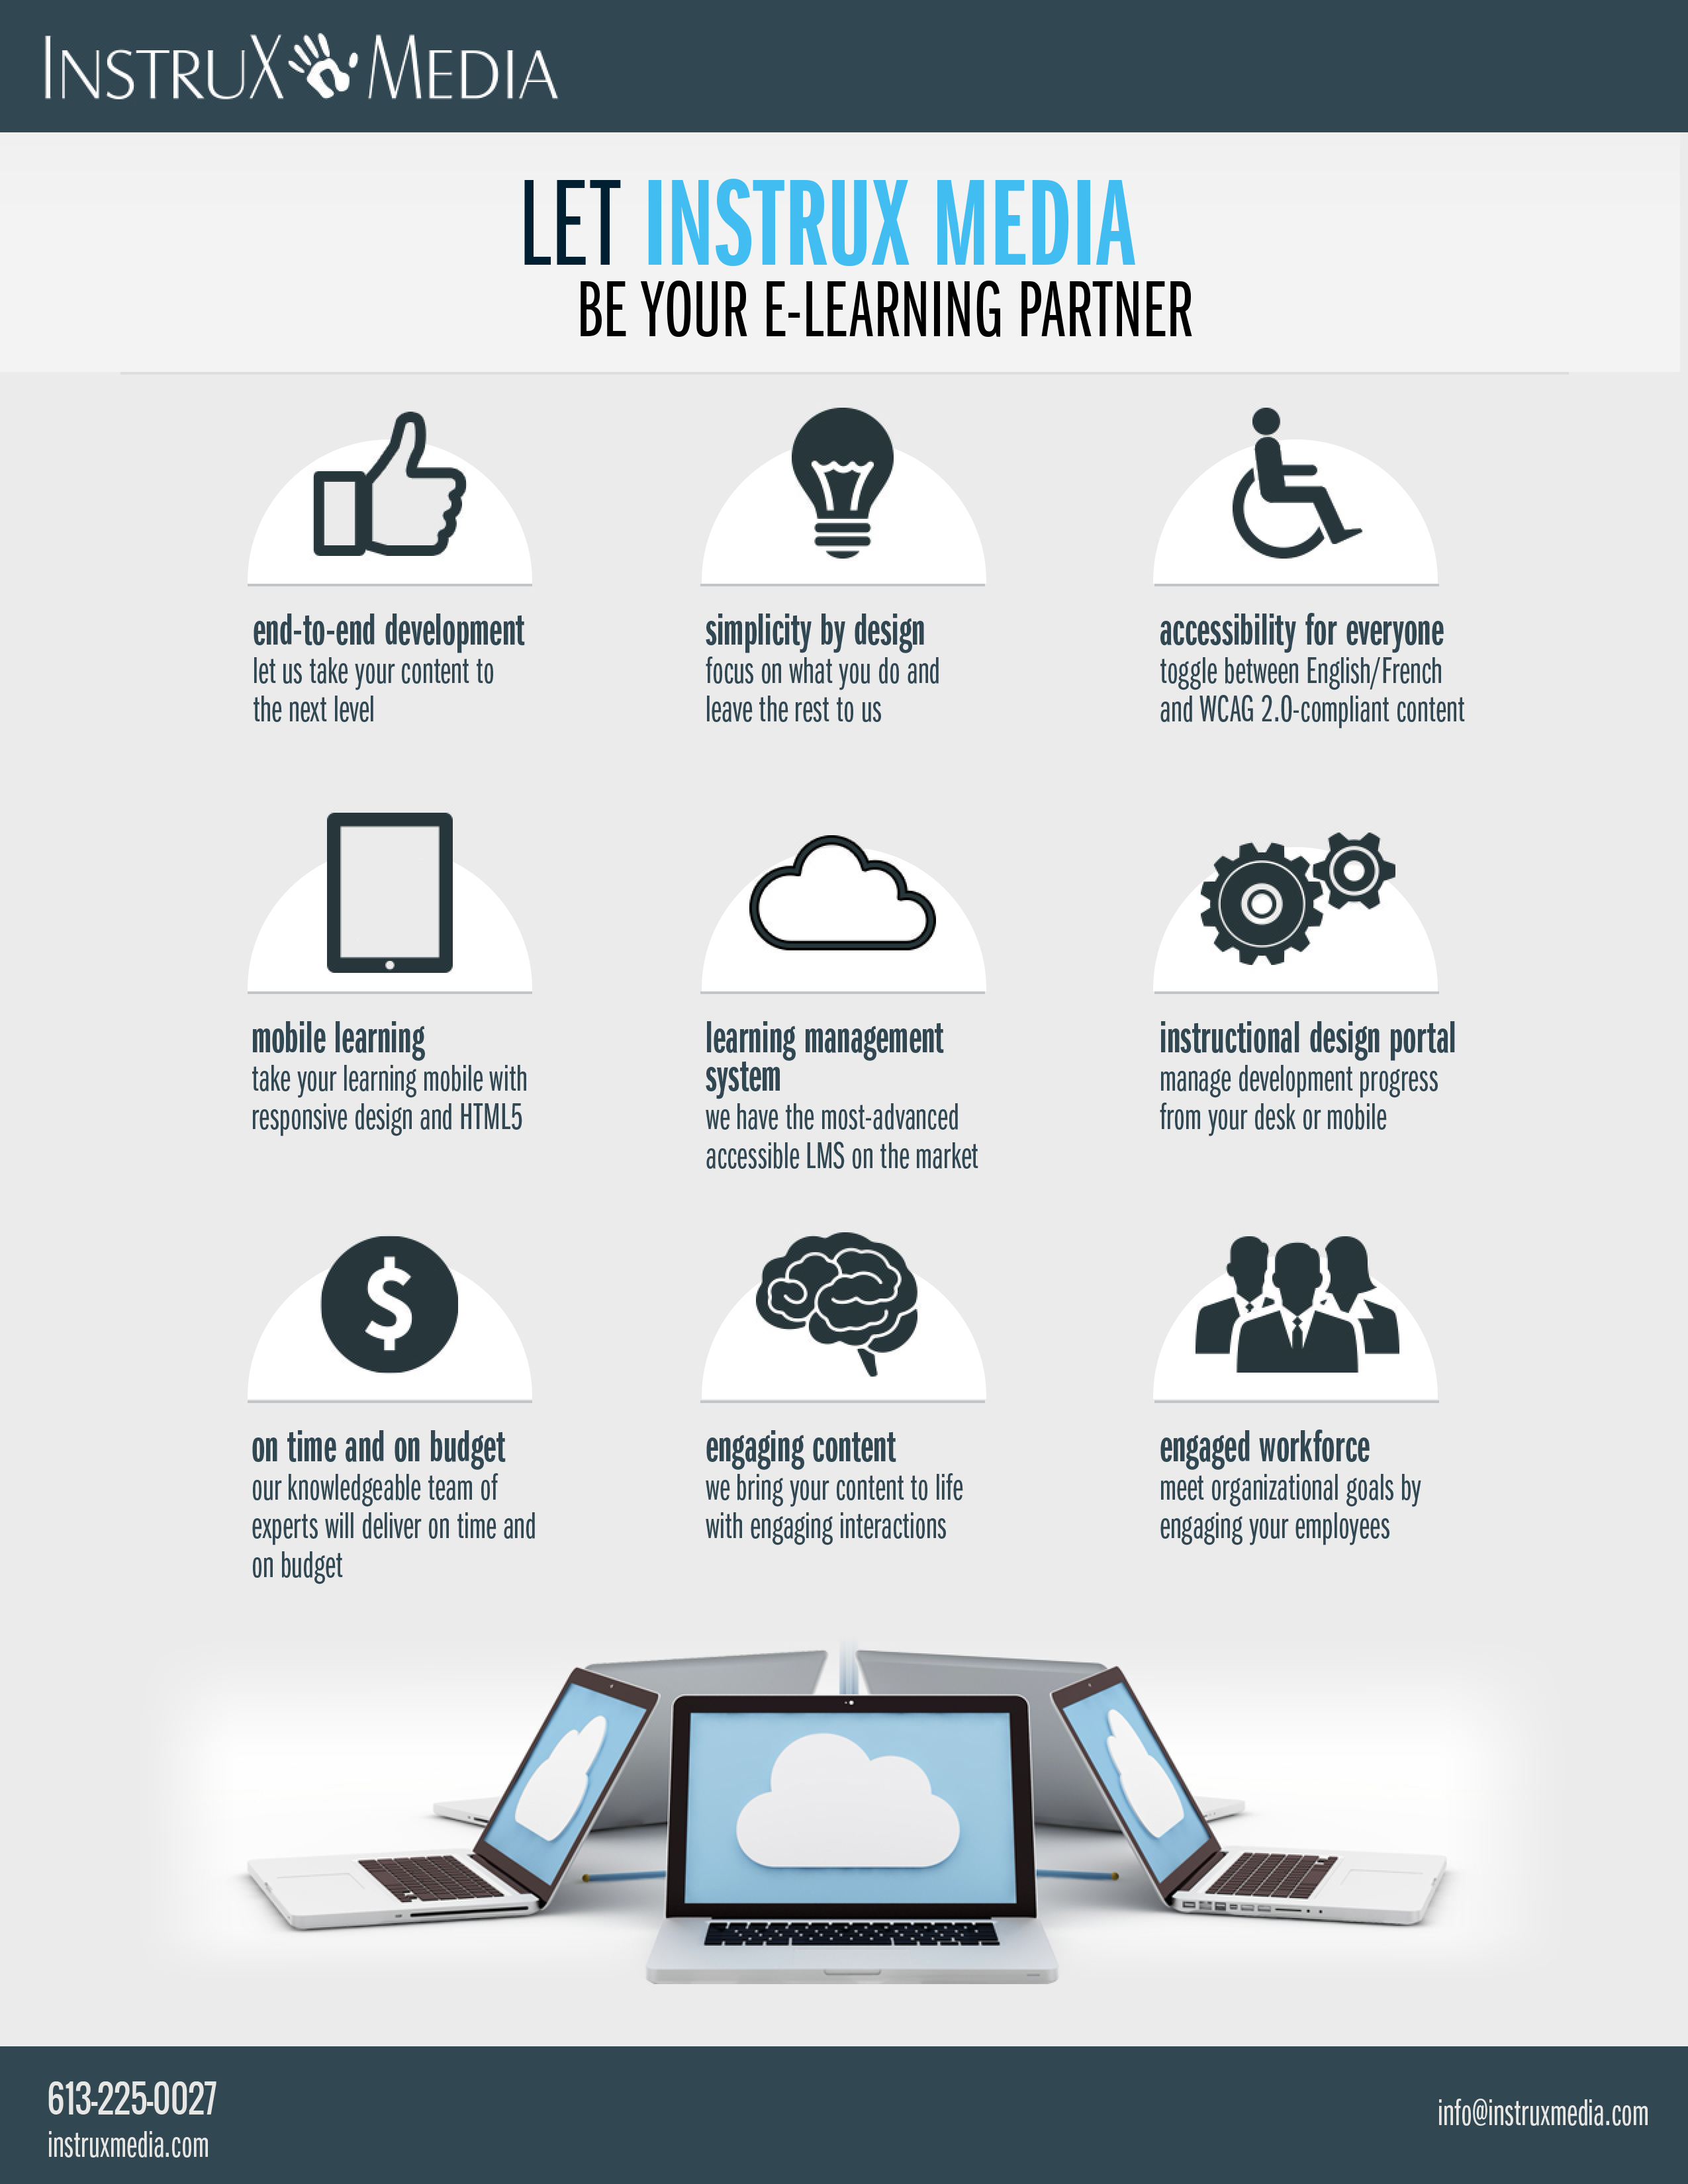 9 Reasons Why Instrux Media is the Leader in E-Learning